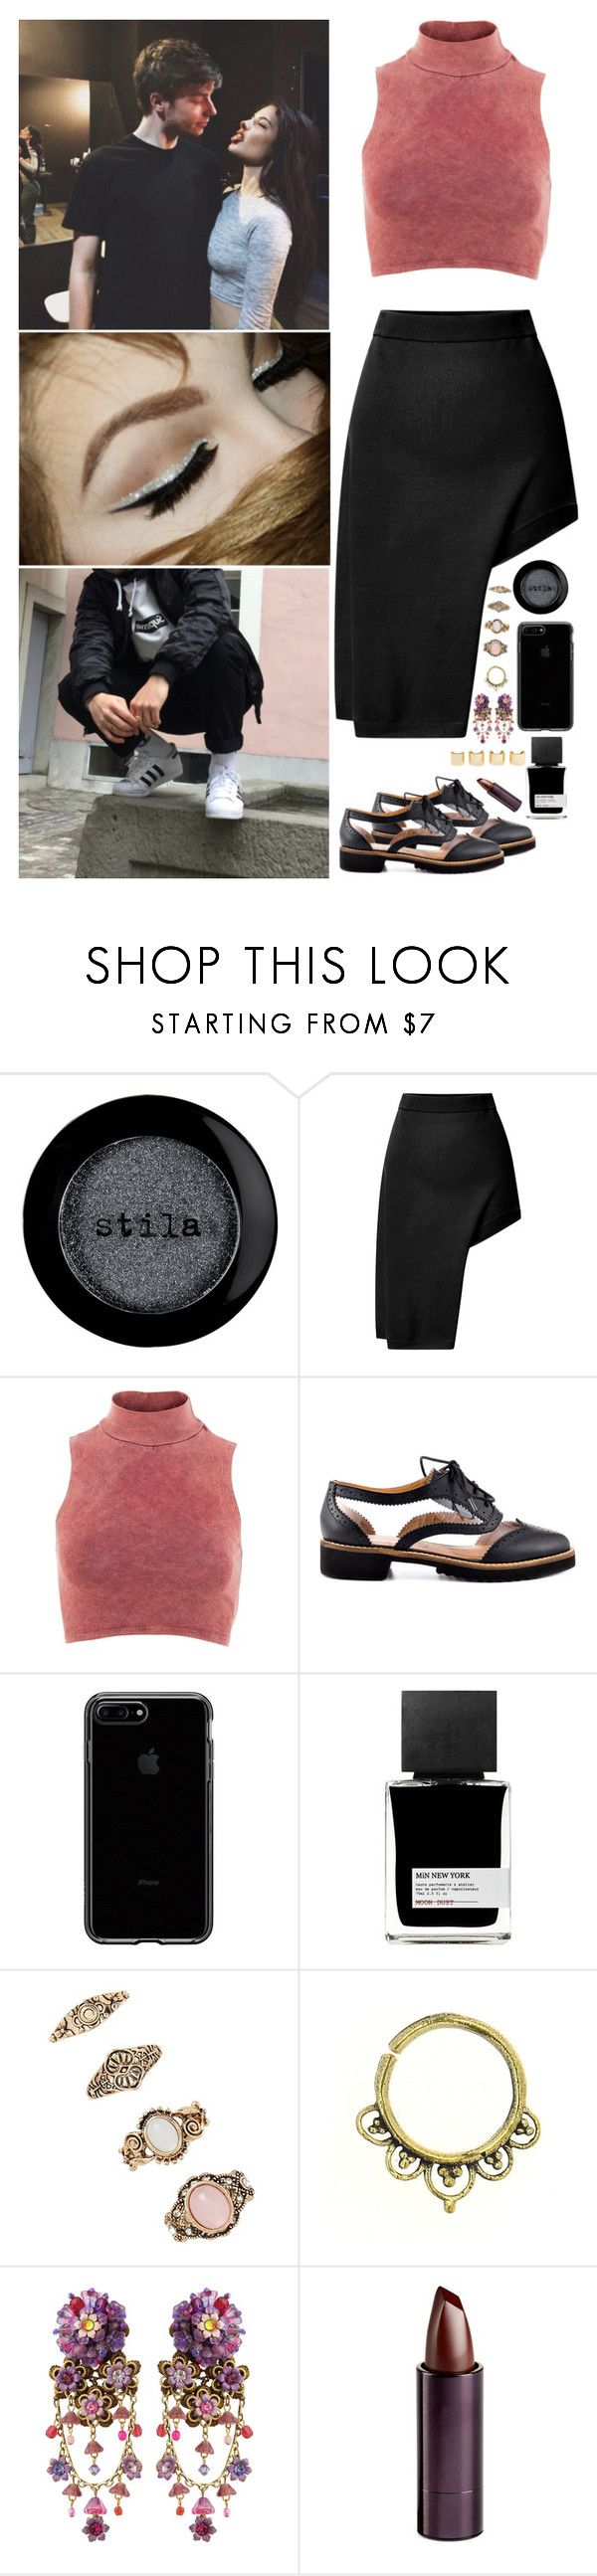 """""""Just a touch...²"""" by anaalsan ❤ liked on Polyvore featuring Stila, KEEP ME, Opening Ceremony, Influence, Kelsi Dagger Brooklyn, MiN New York, Forever 21, Michal Negrin, Luv Aj and Serge Lutens Beauté"""